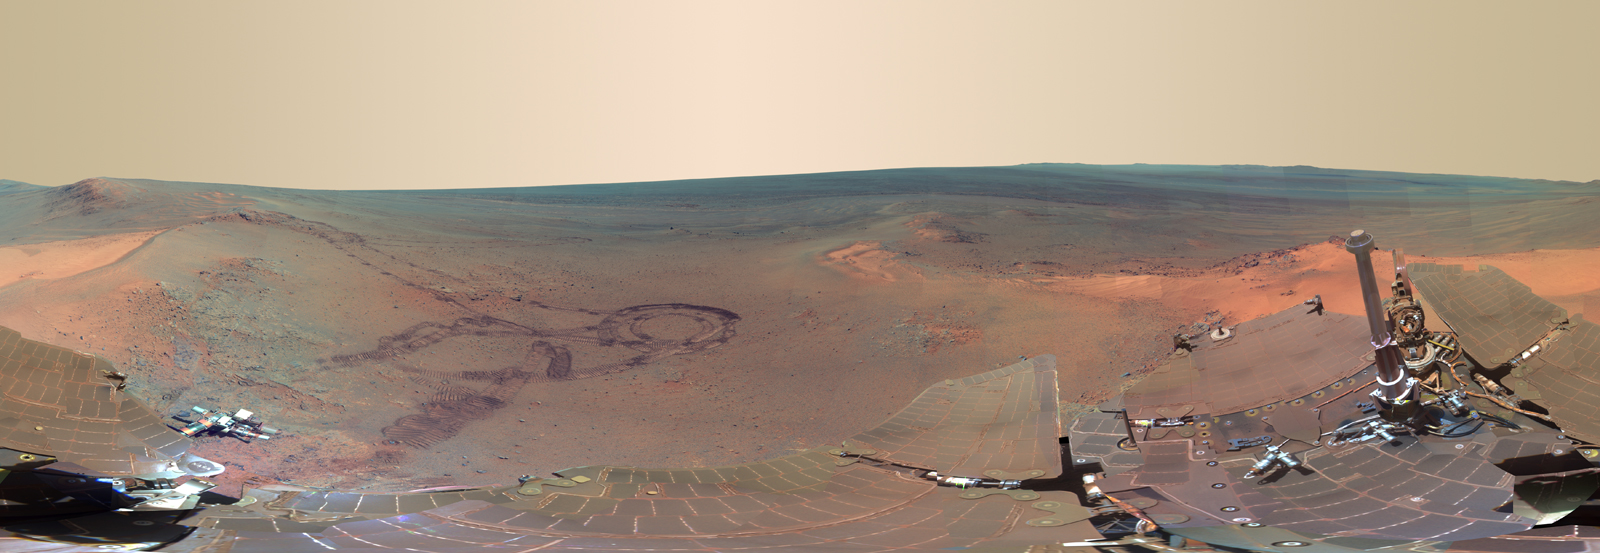 opportunity-rover-pancam